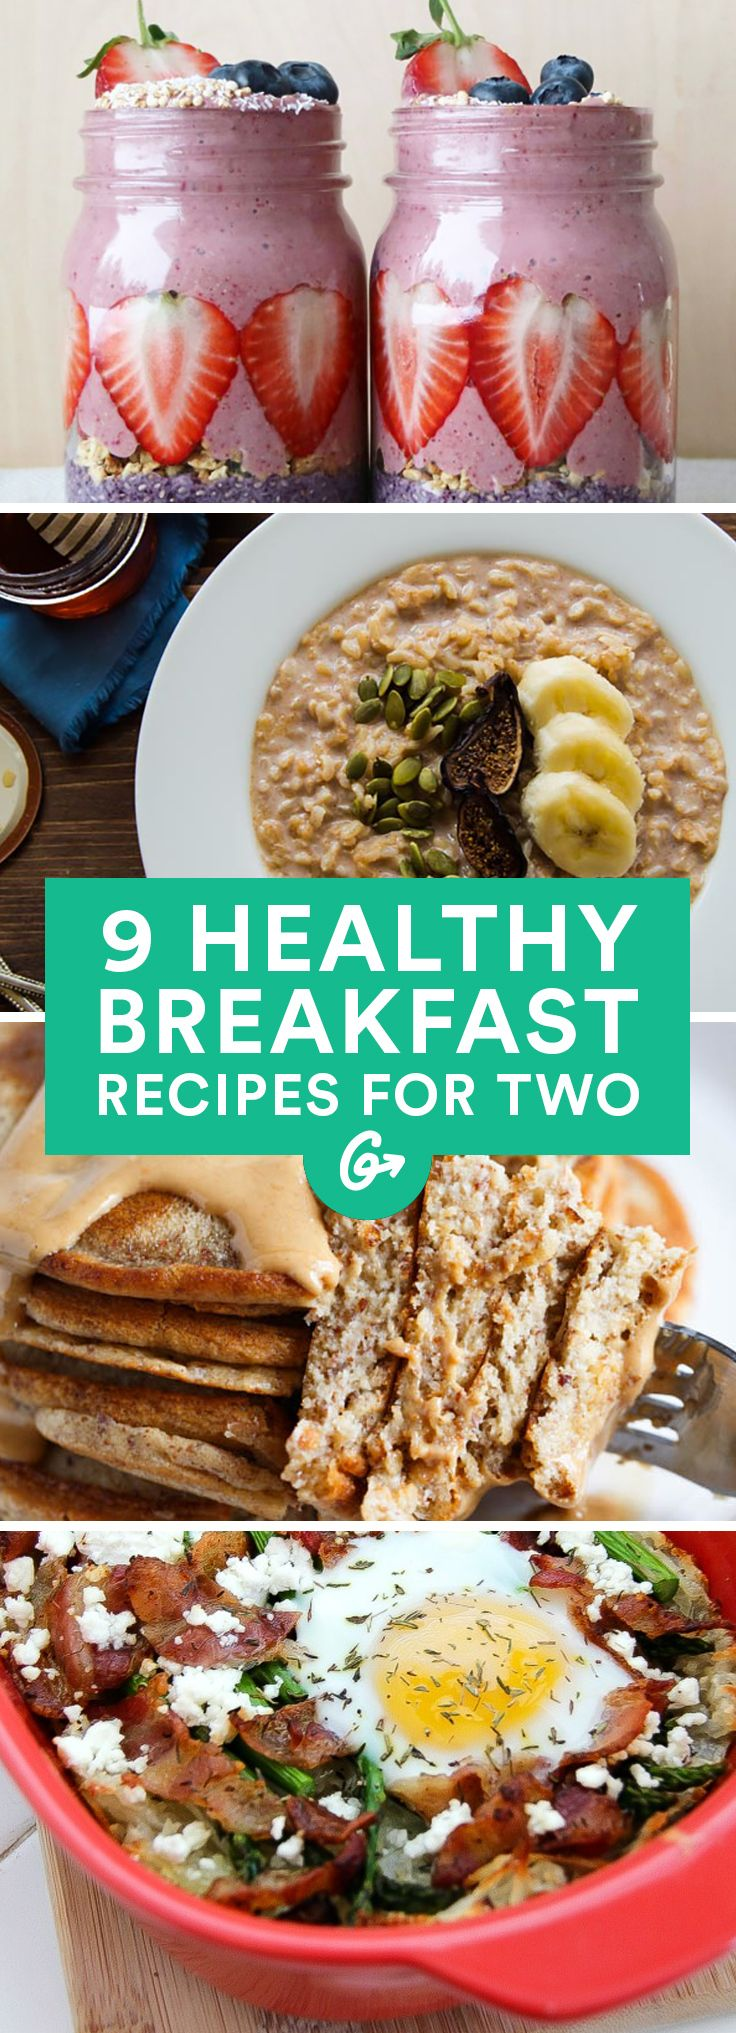 Impress your breakfast buddy with one of these hearty recipes. #healthy #breakfast #recipes http://greatist.com/eat/healthy-breakfast-recipes-for-two